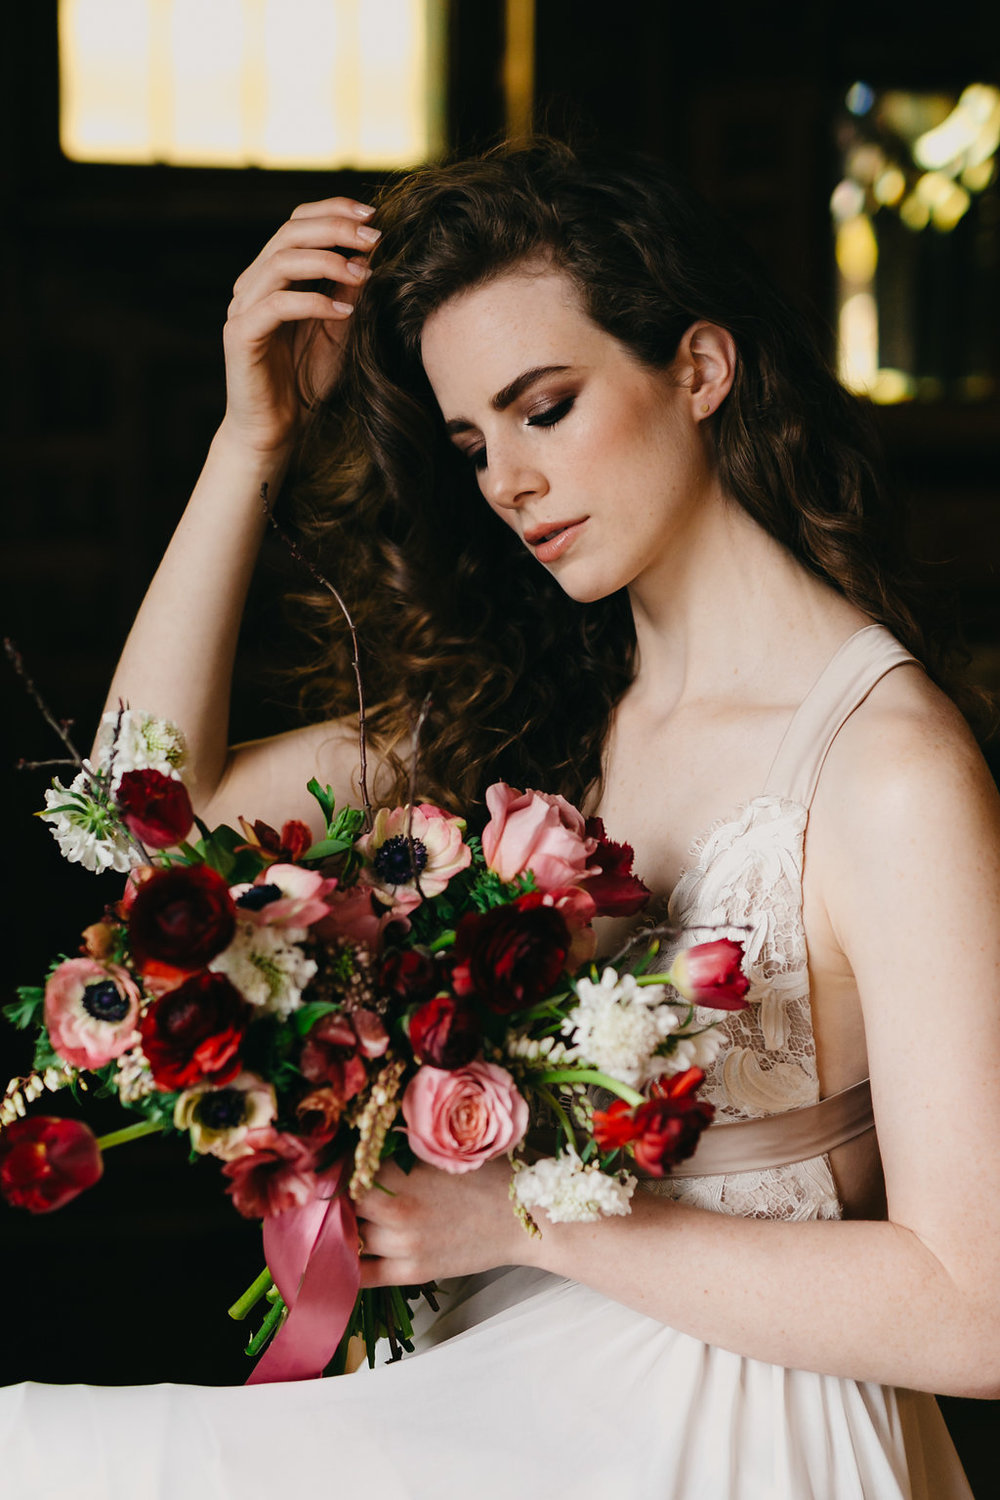 Kidd Studs as above left. Photography @KaylaRocca / Model @Frecklegalaxy / Dress @Tuvellebridal via @Etsyca #Etsyca / Flowers @Timberlost / Hair and MUA @lilyhobeauty / Venue @Berkeleyevents